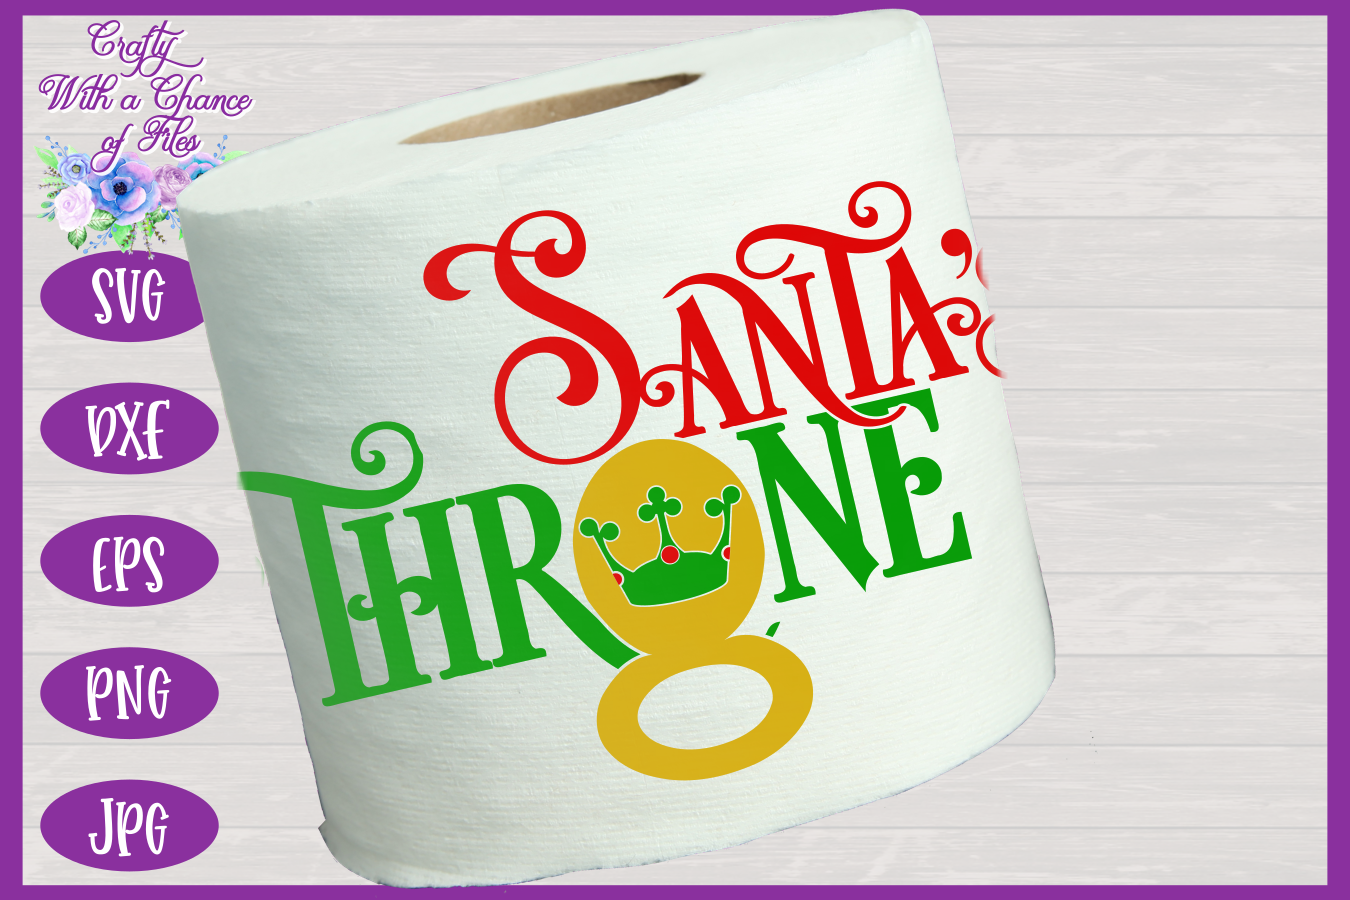 Christmas Toilet Paper SVG - Funny Gag Gift Design example image 2